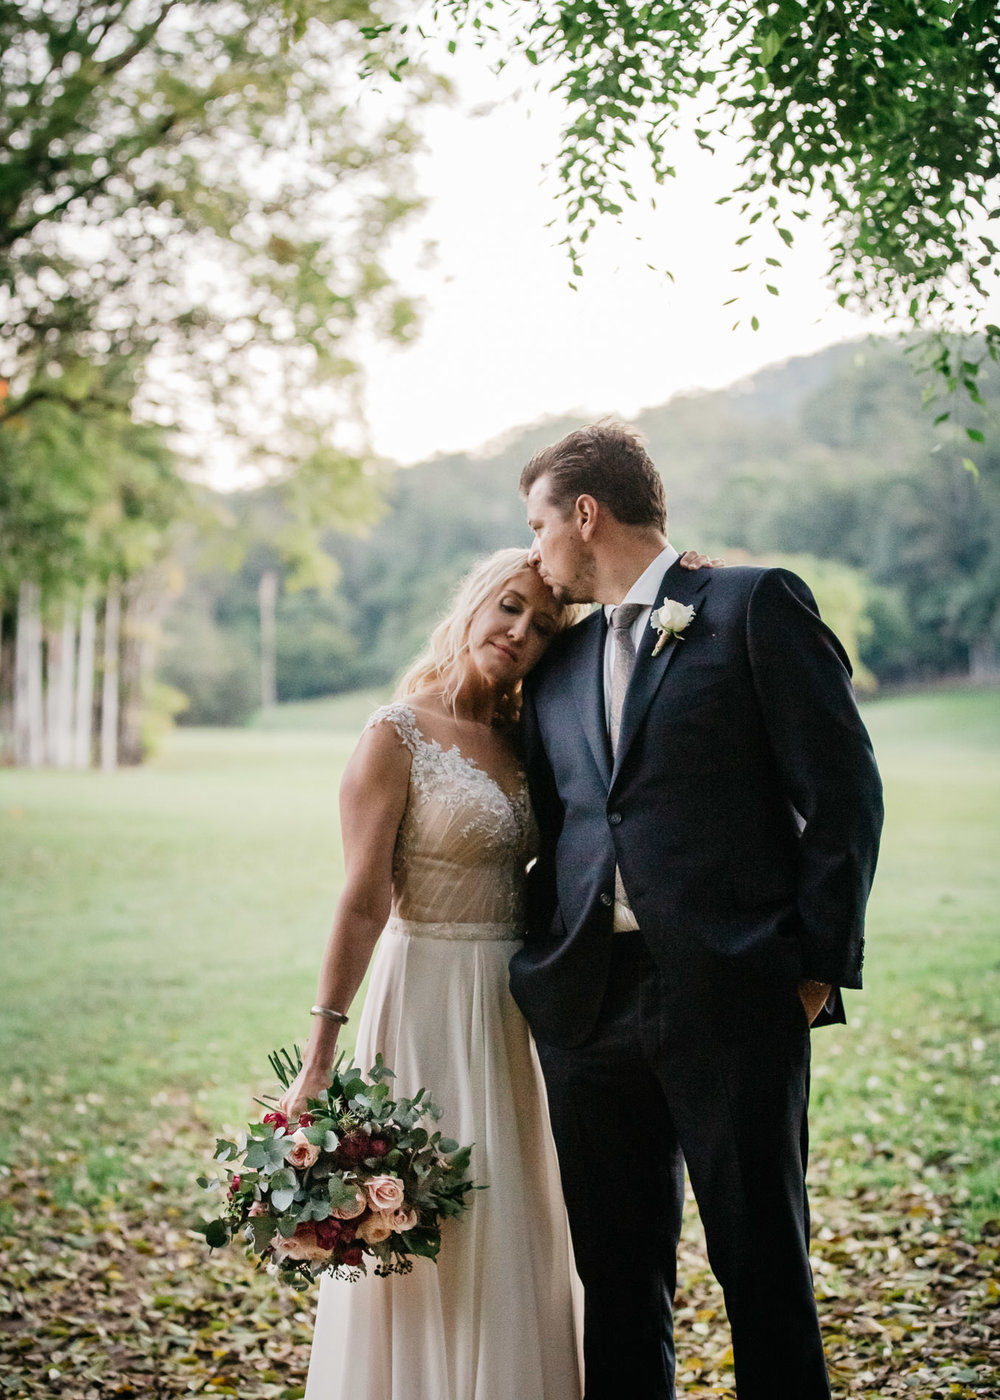 True North Photography_Boomerang Farm_Stacey and Isaac_Gold Coast Wedding_Barm Wedding_Hinterland Wedding-173.jpg